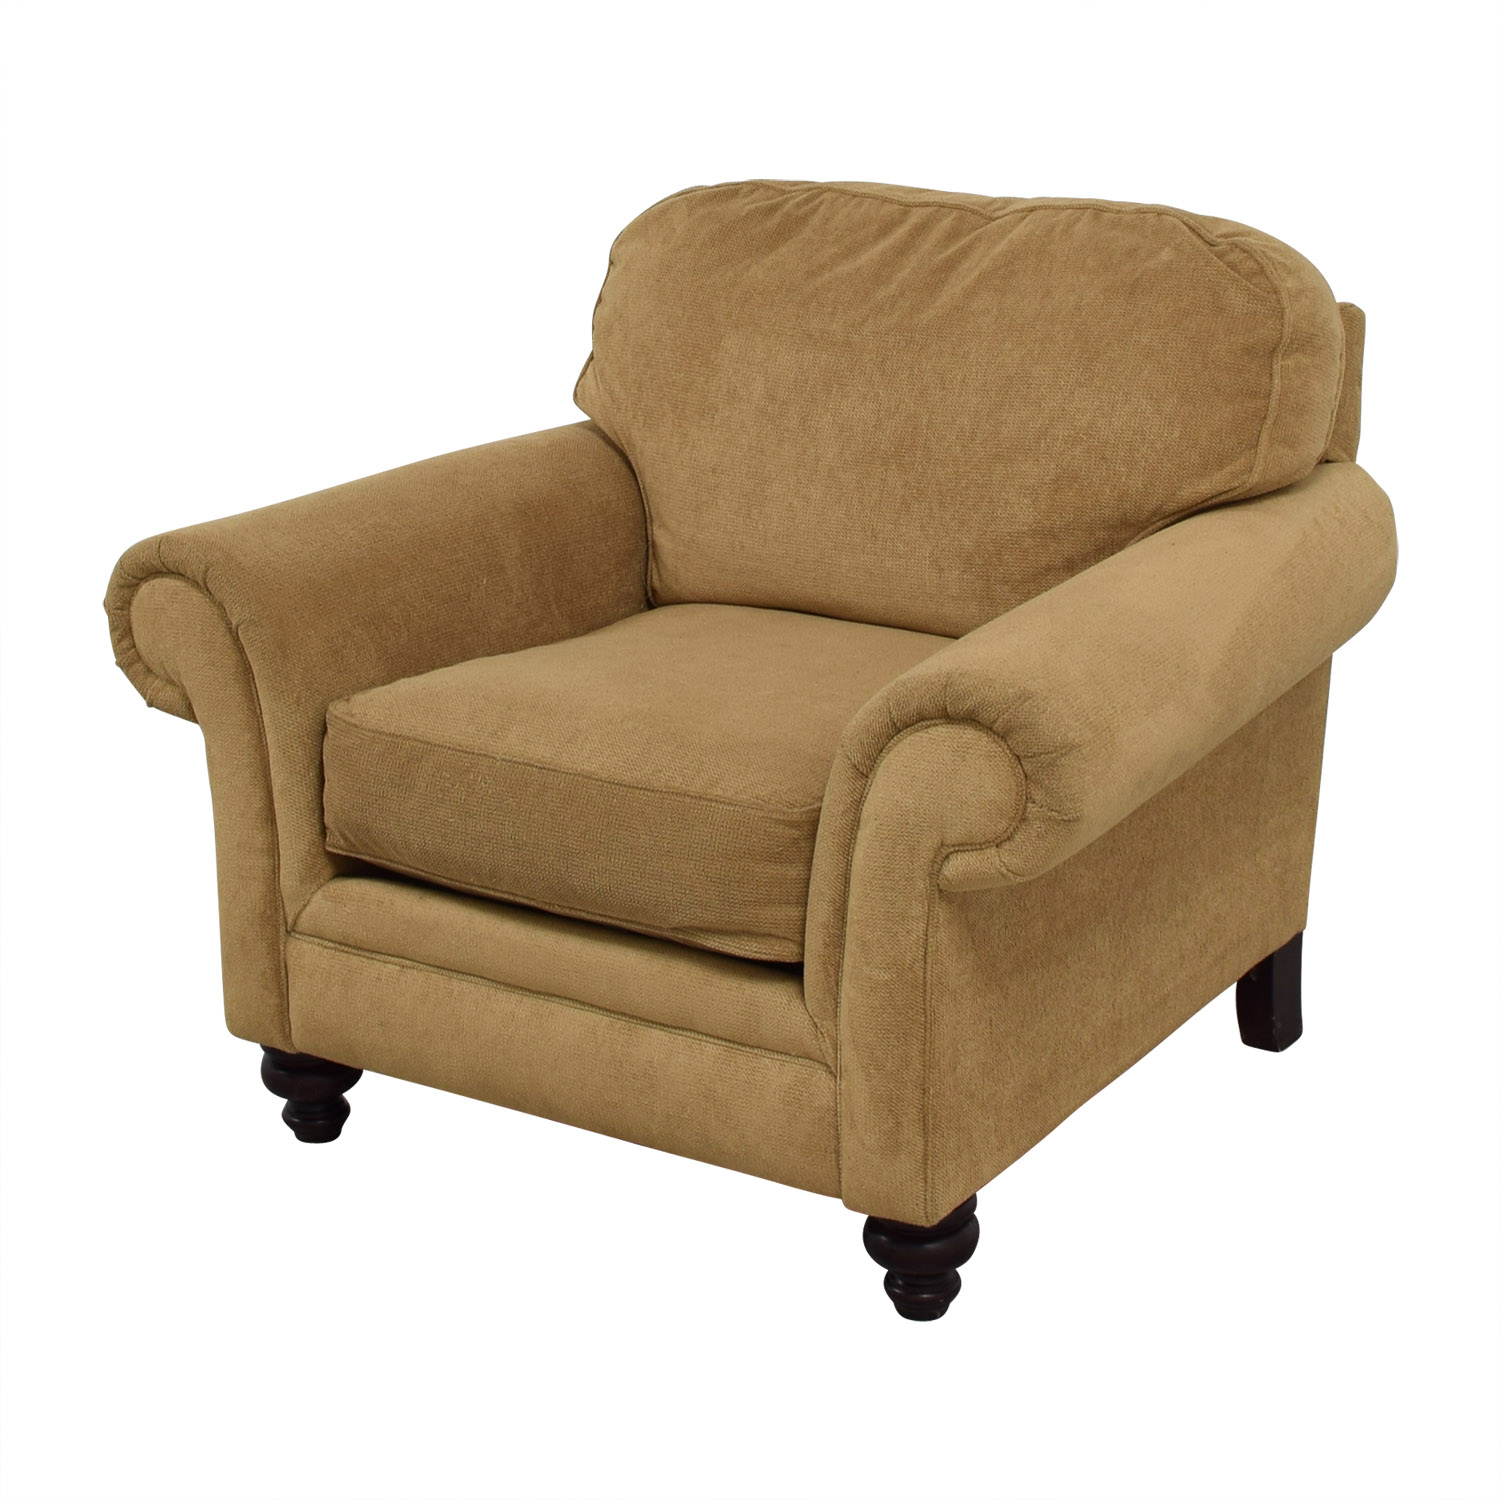 86 Off Broyhill Broyhill Mustard Yellow Accent Chair